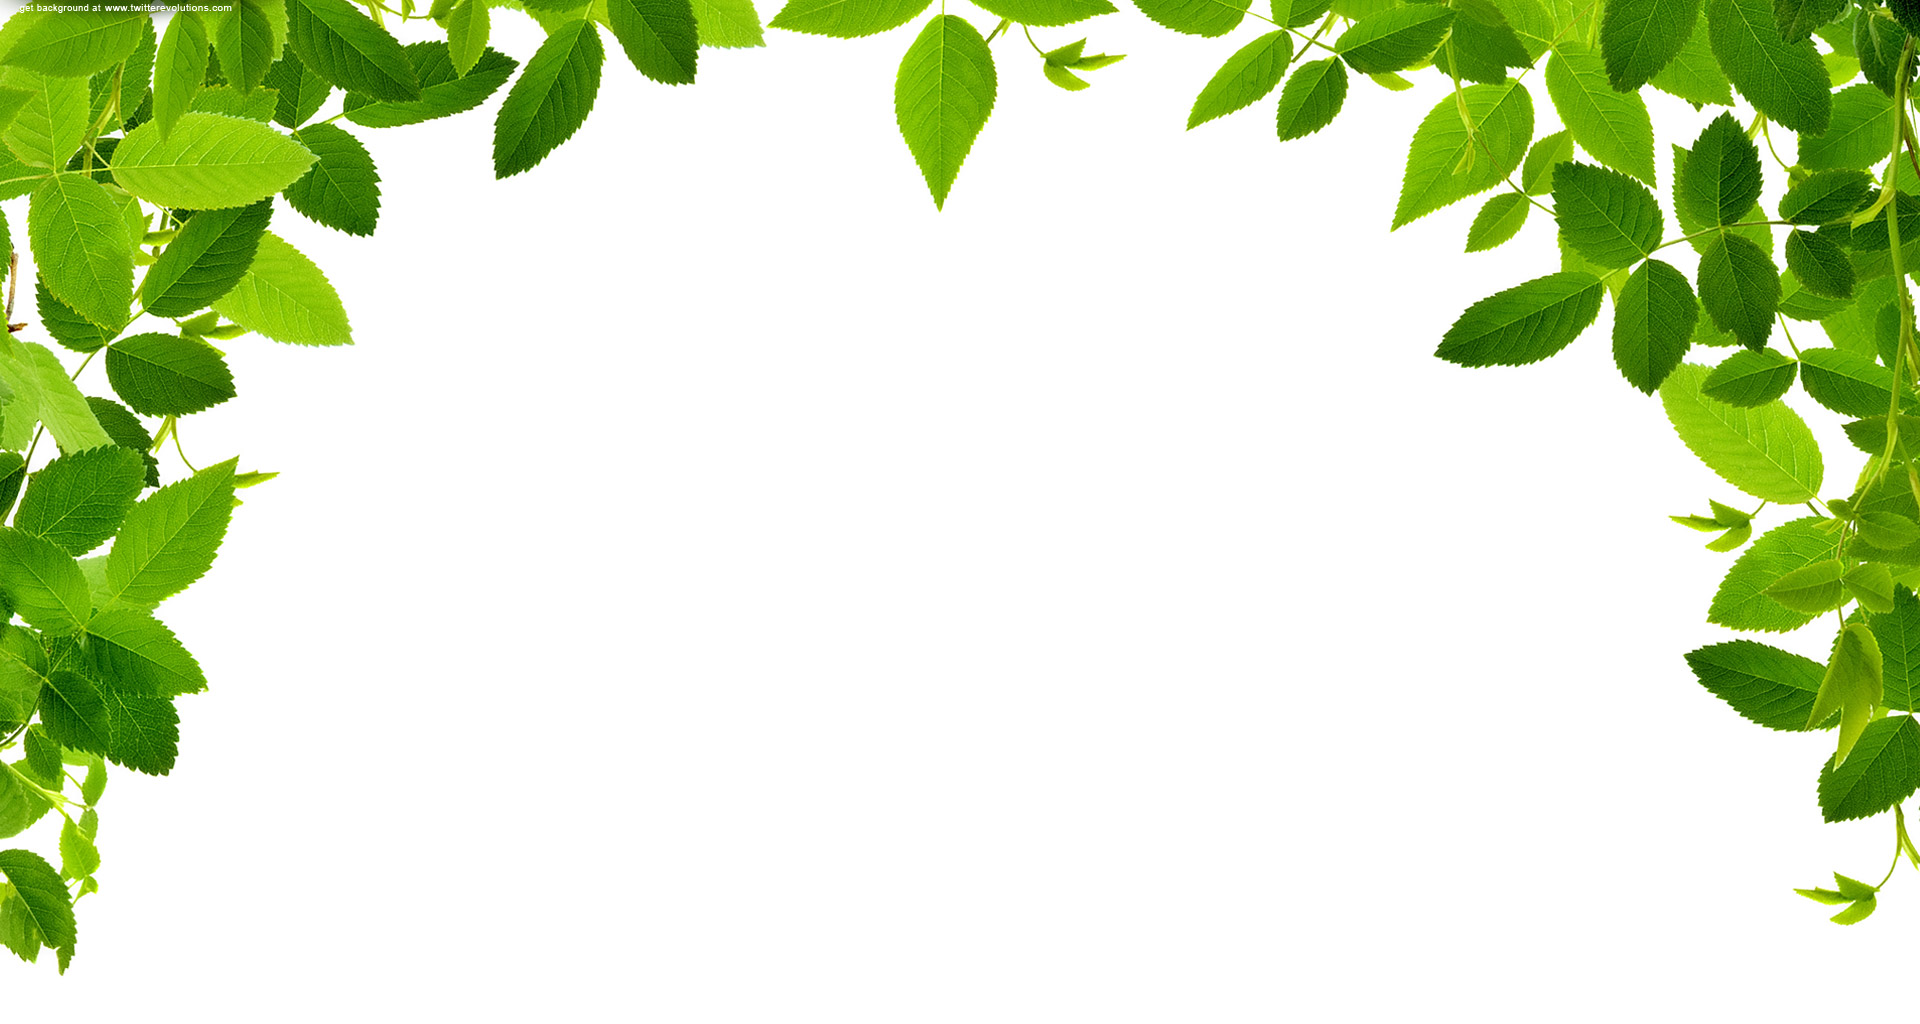 pin Foliage clipart jungle le